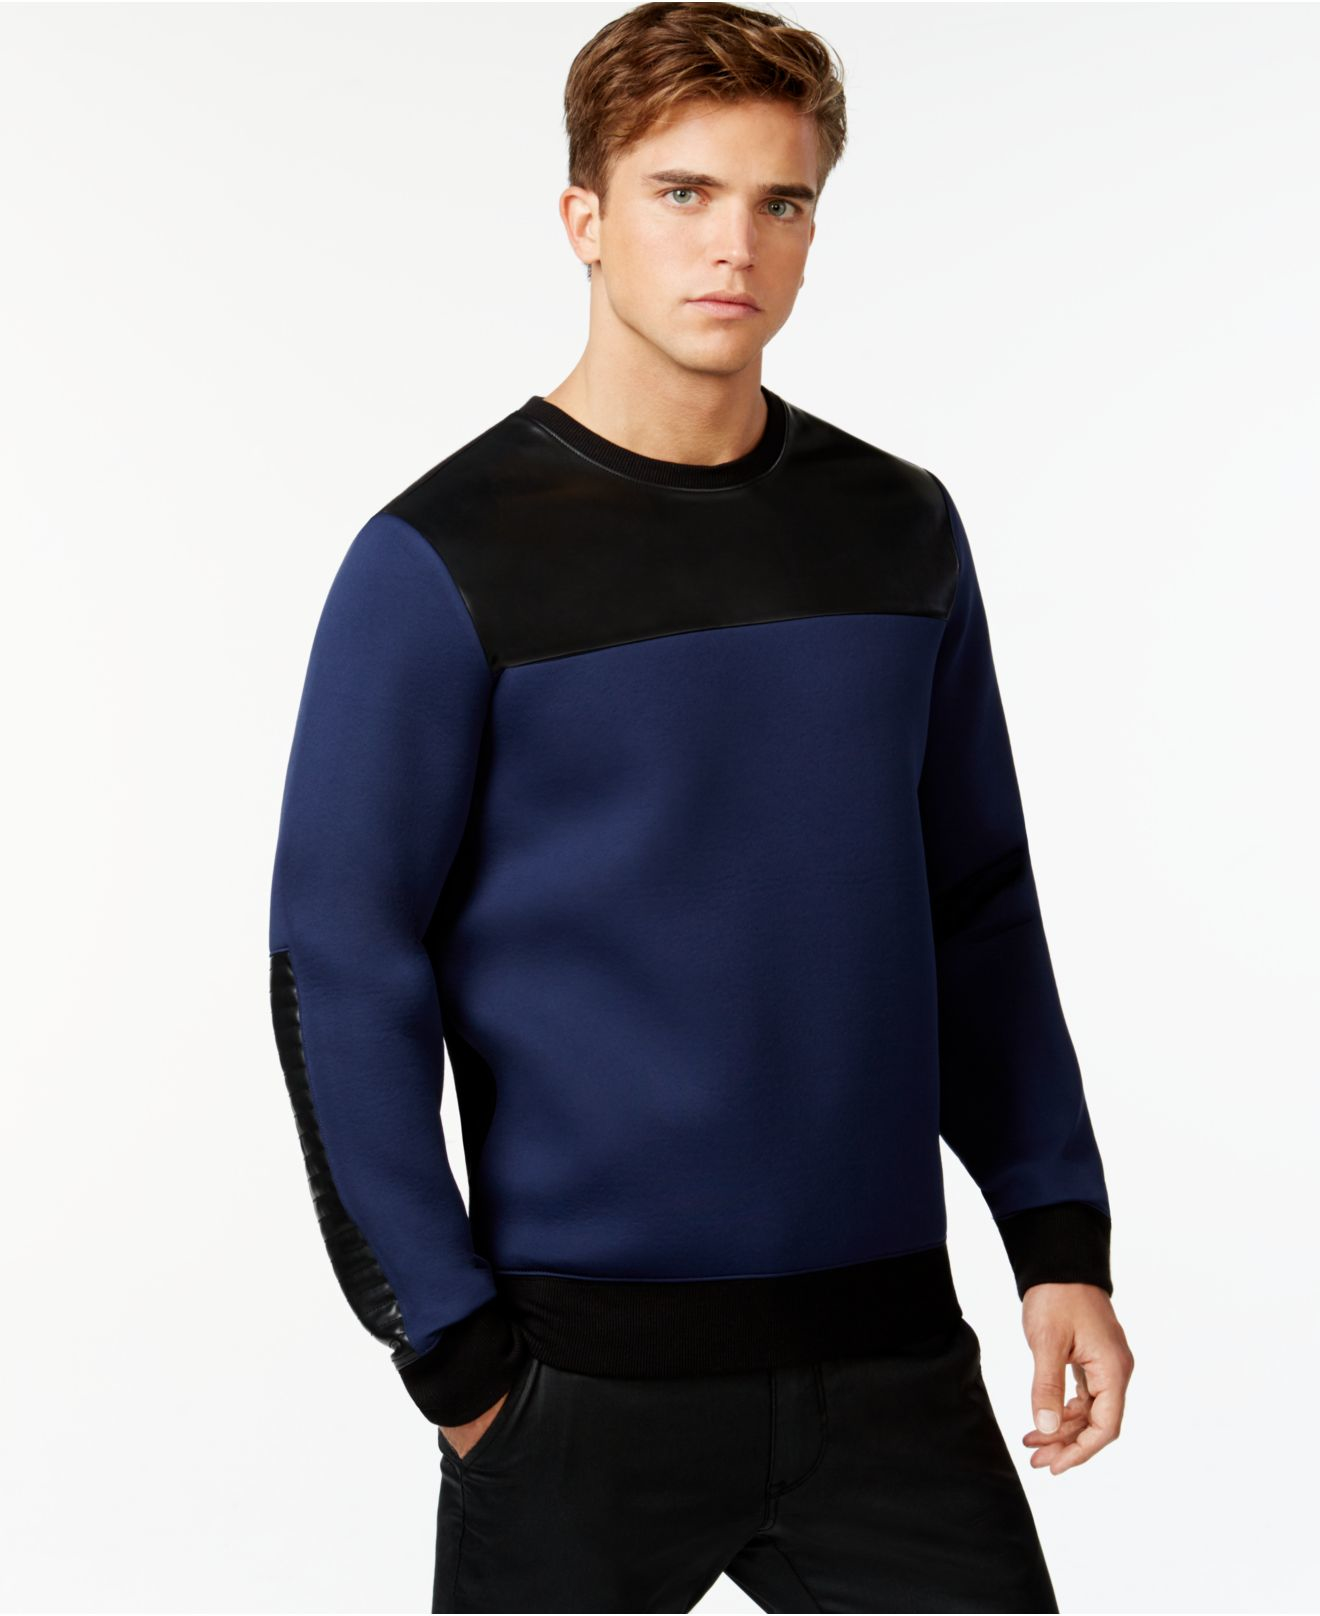 26a1d1f2eda3 Guess Colorblock Crew-neck Sweatshirt in Blue for Men - Lyst